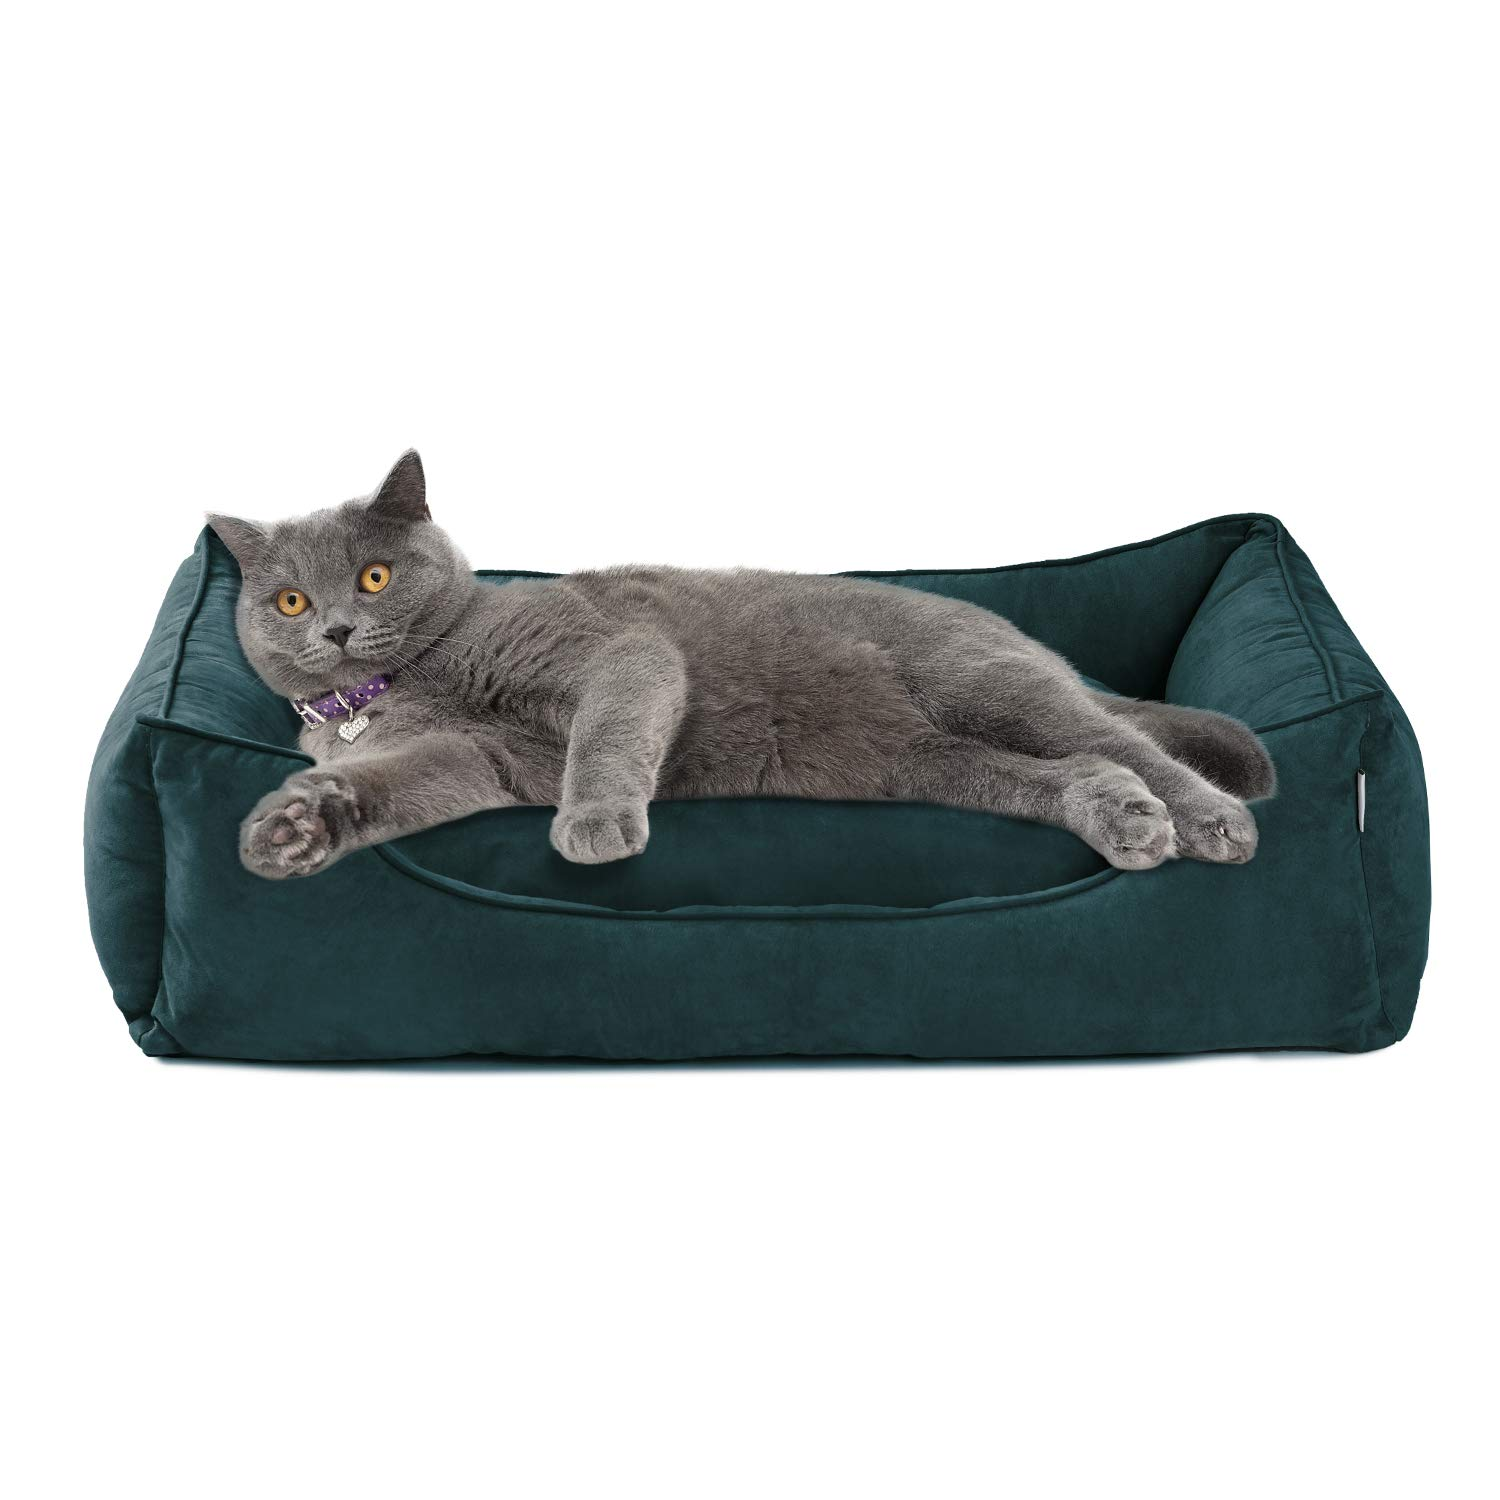 Love's cabin Large Dog Bed with Removable Washable Cover, 42in XXXL Green Cuddler Pet Bed for Small Dogs & Cats Pet Bedding, Padded Cushion Water-Resistant Bottom, Super Soft & Durable Pet Supplies by Love's cabin